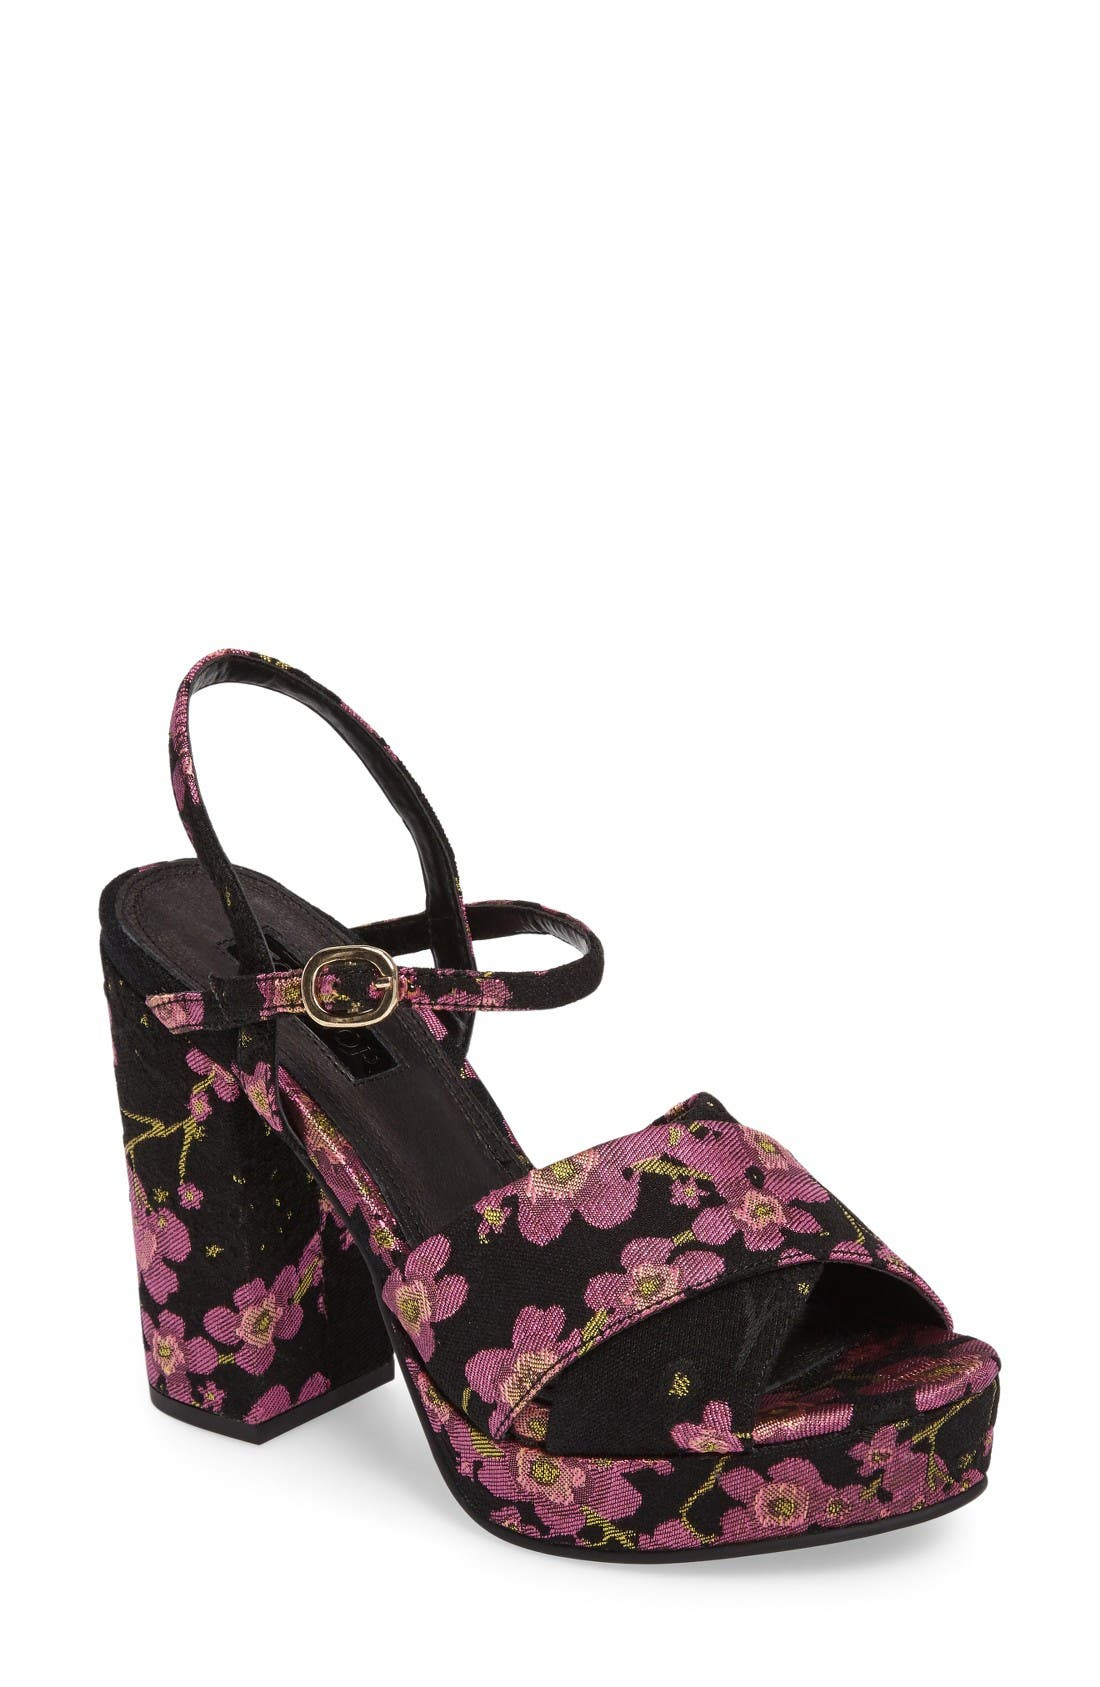 Alternate Image 1 Selected - Topshop 'Leona' Print Platform Sandal (Women)